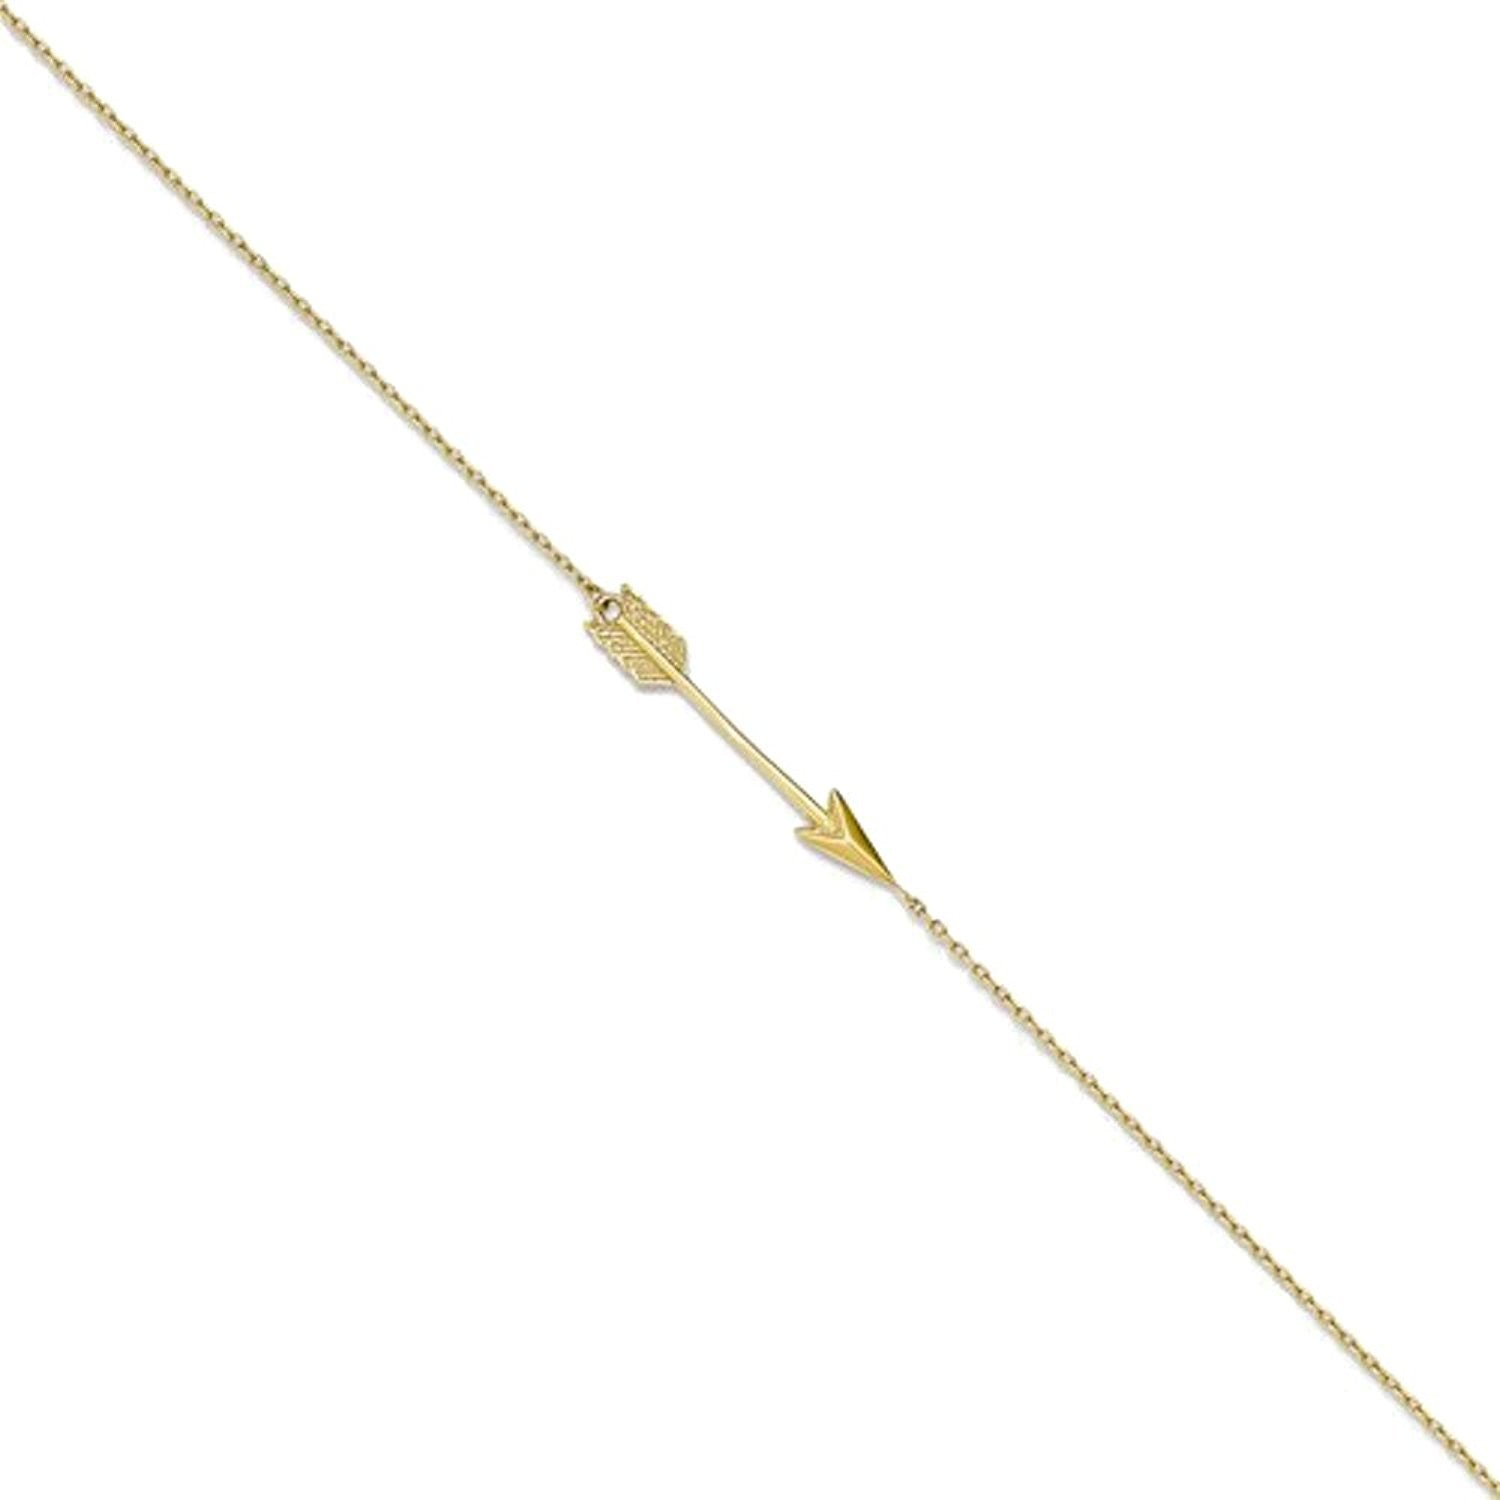 14k Yellow Gold Arrow Anklet 9 Inch with Extender